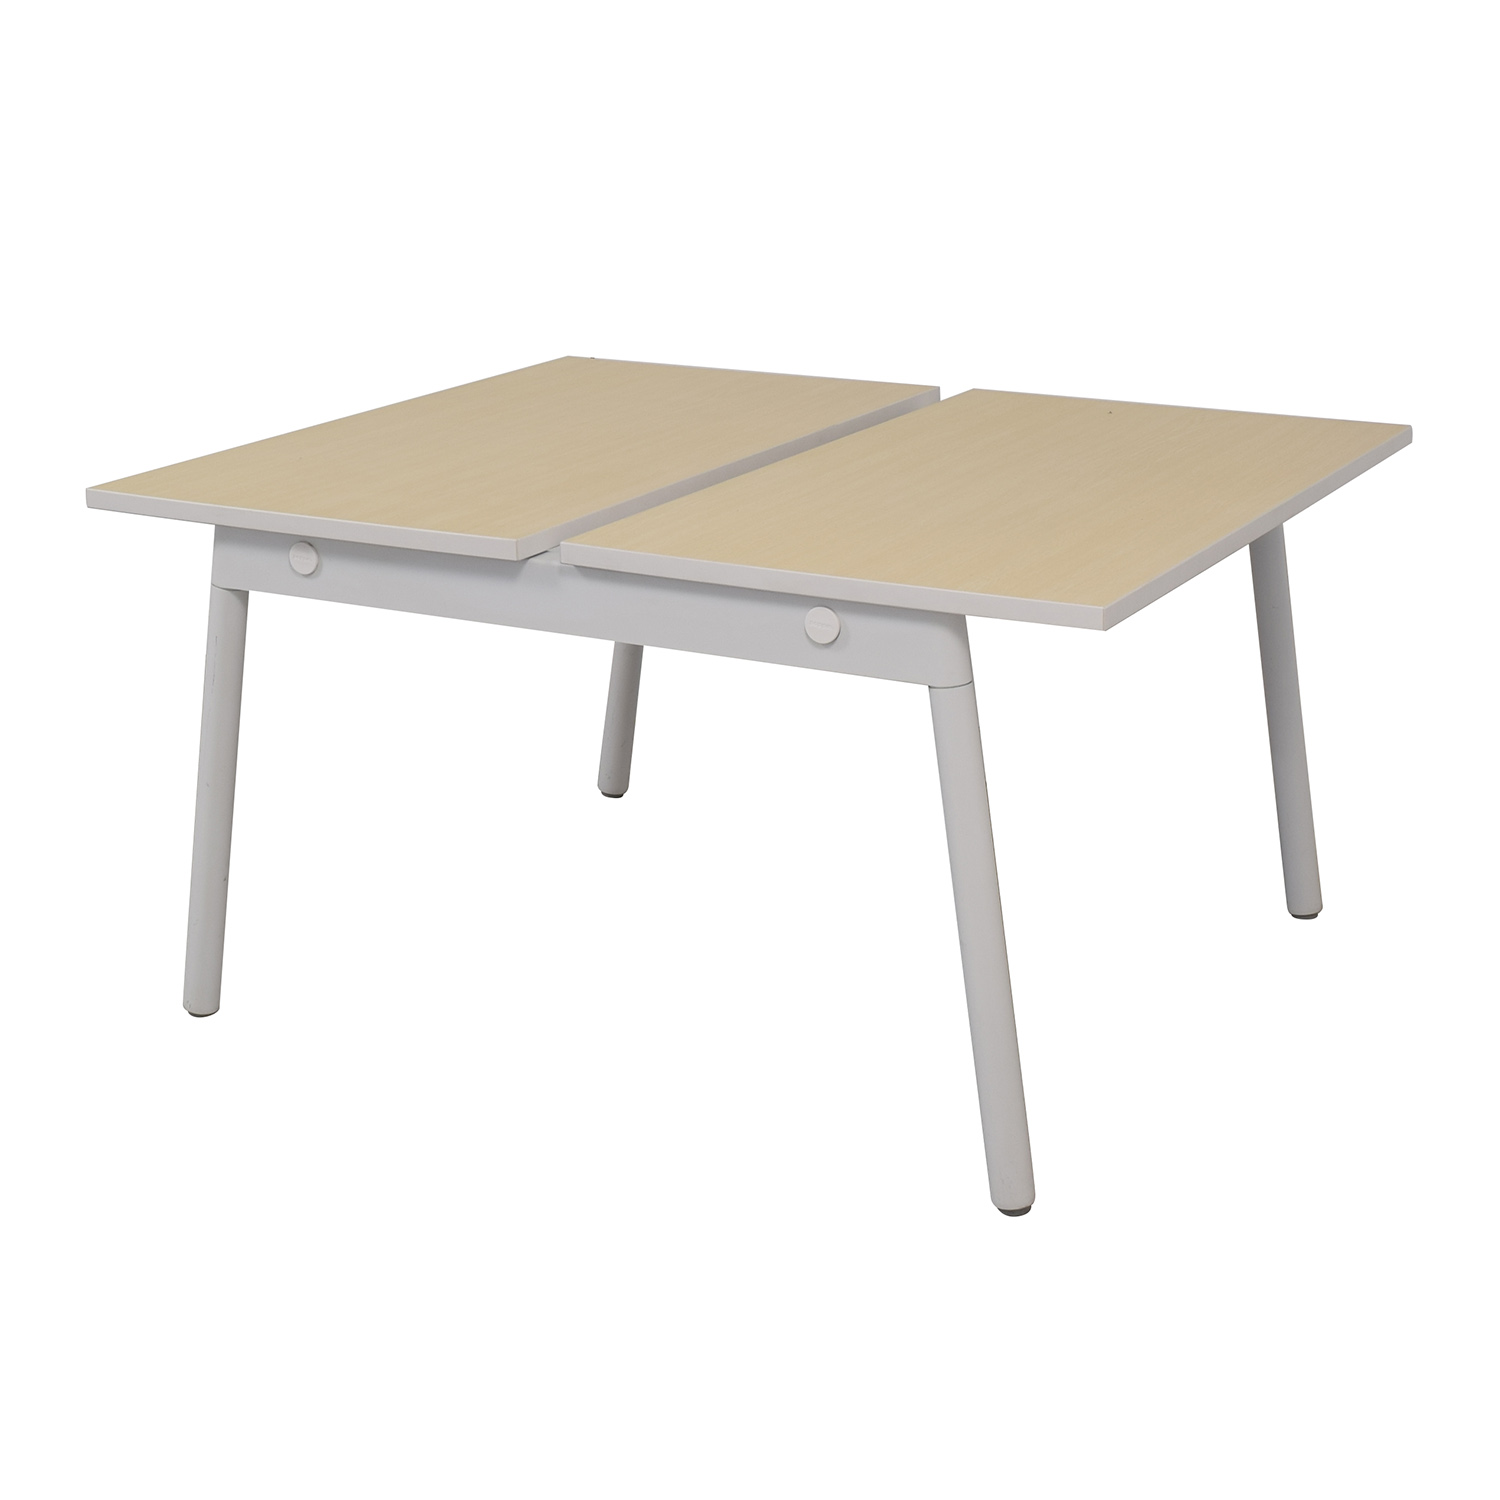 Poppin Poppin Series A Natural Oak Double Desk used